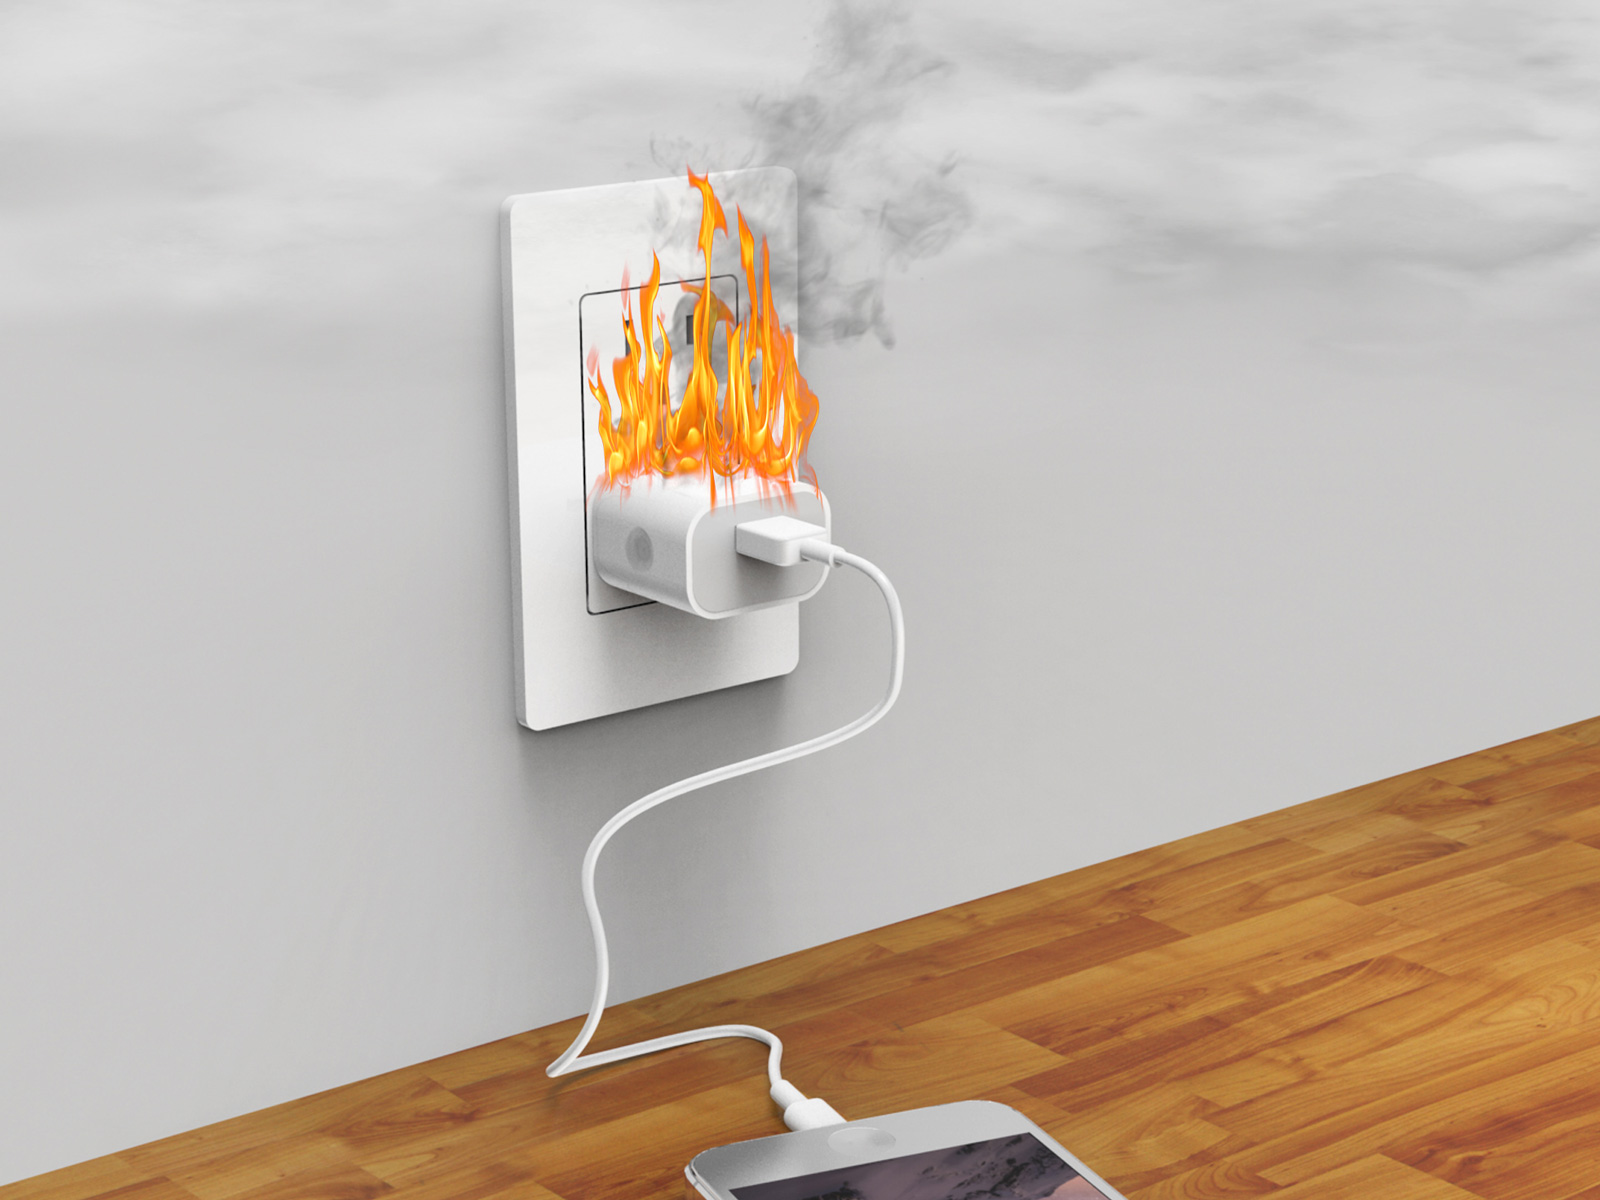 fake iphone charger fire